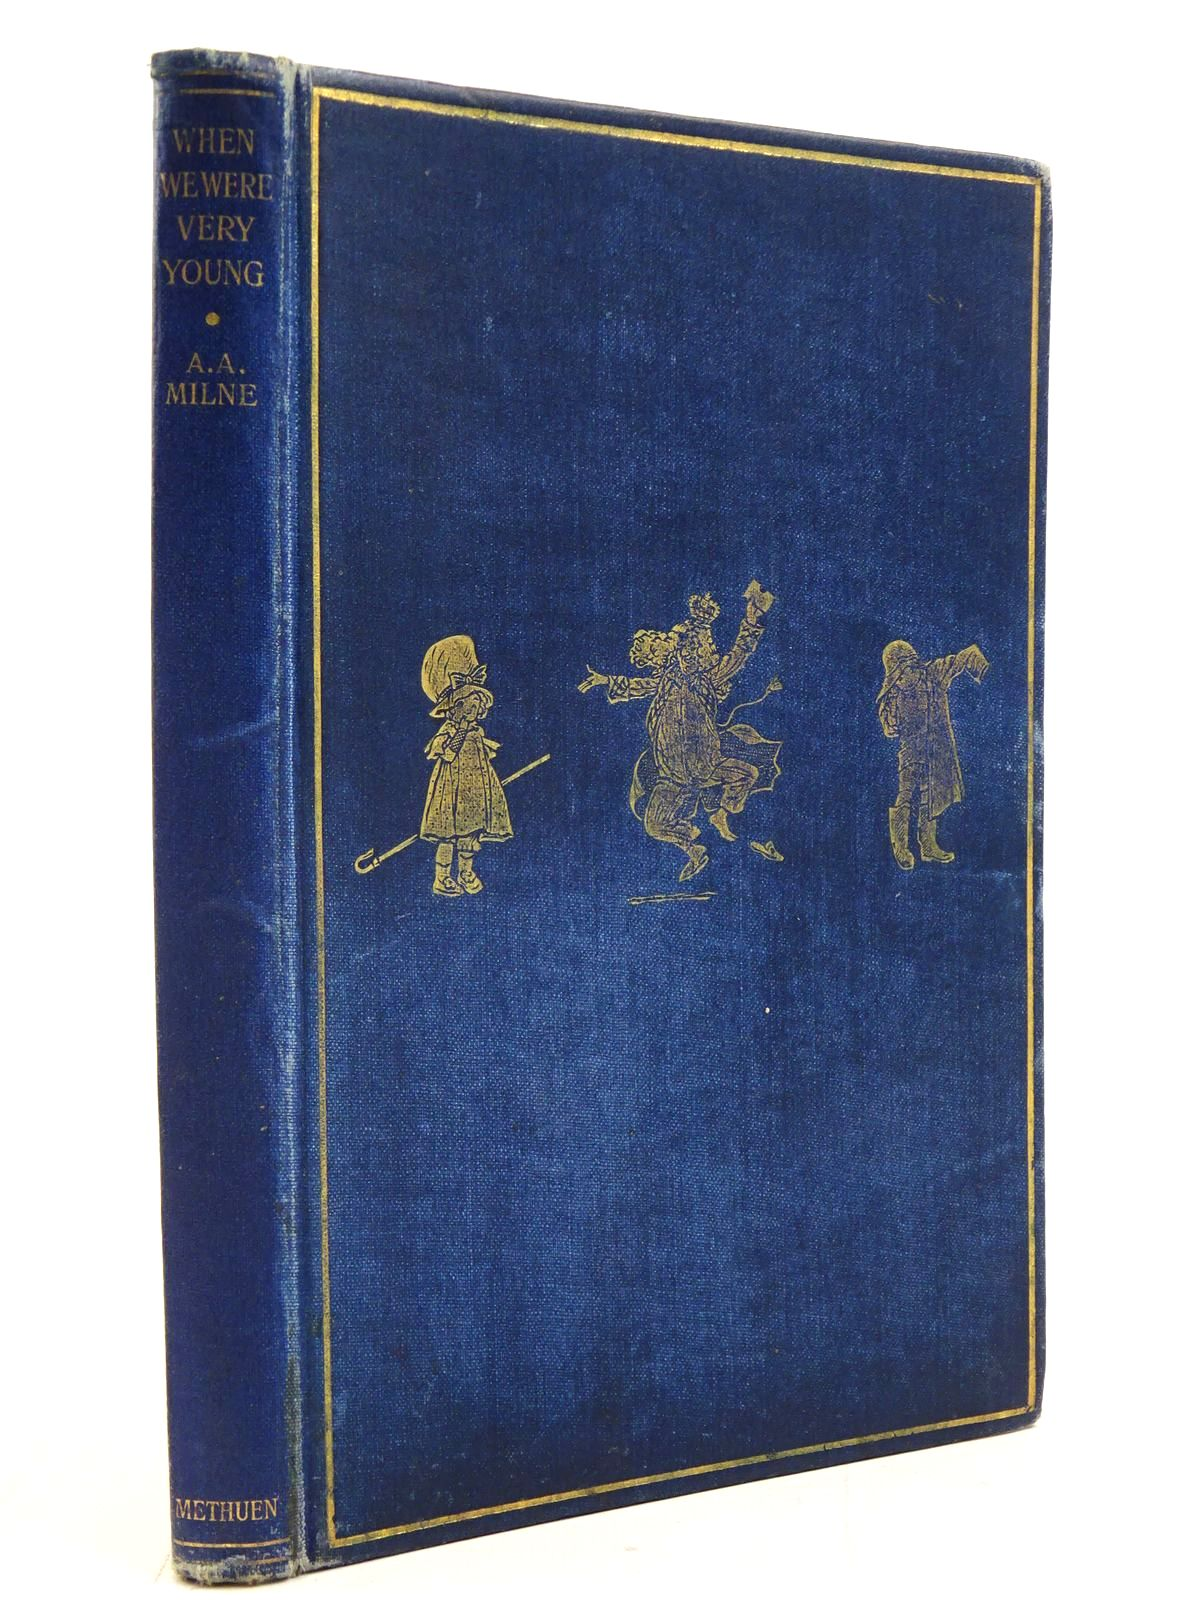 Photo of WHEN WE WERE VERY YOUNG written by Milne, A.A. illustrated by Shepard, E.H. published by Methuen & Co. Ltd. (STOCK CODE: 2130761)  for sale by Stella & Rose's Books